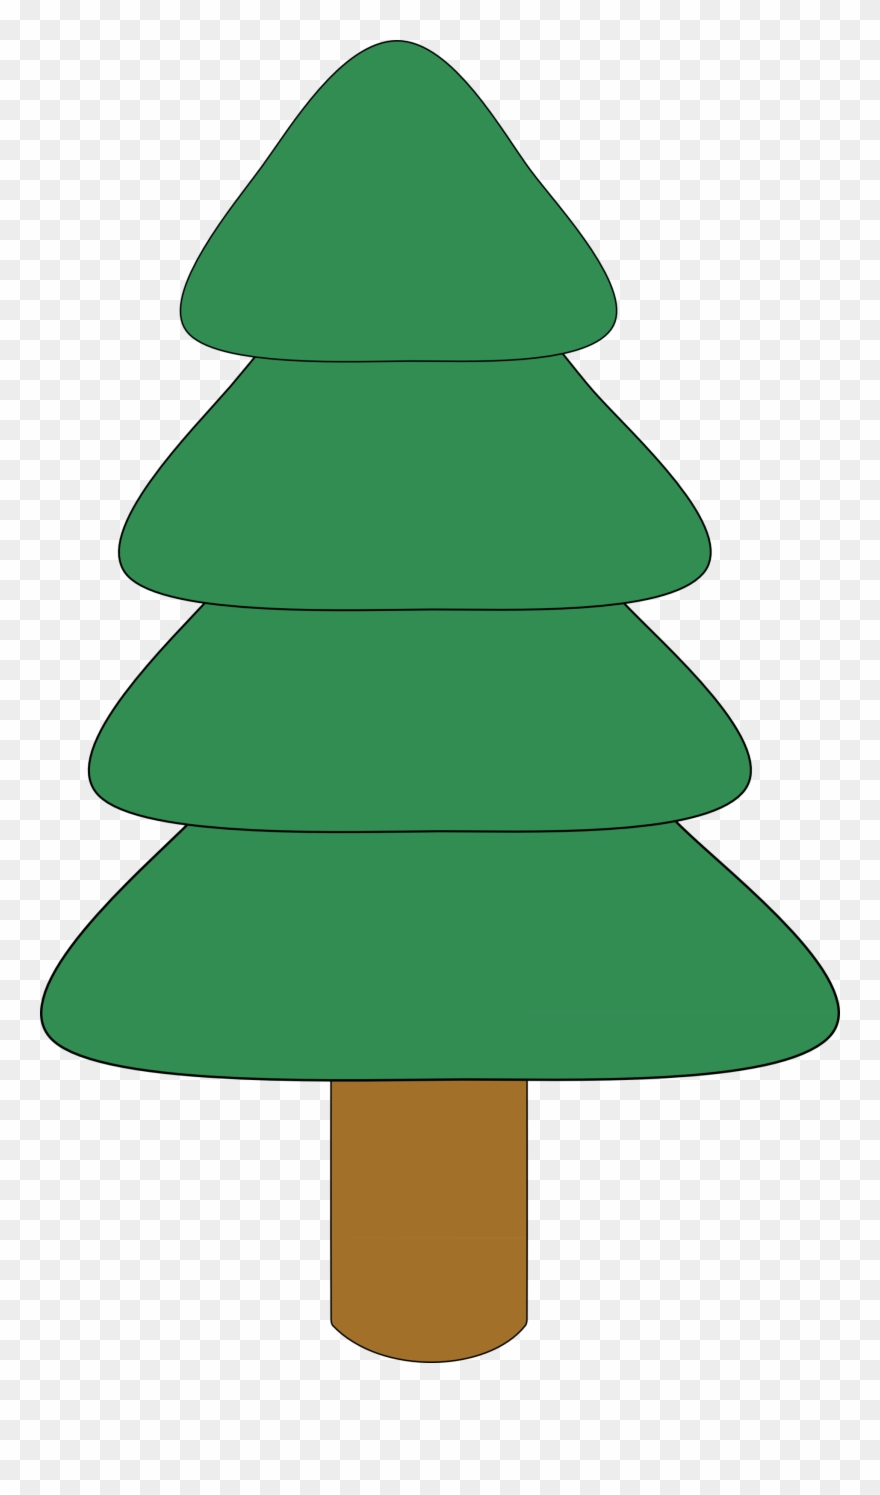 Spruce clipart vector Computer Icons Christmas Tree Spruce Download - Clipart ... vector